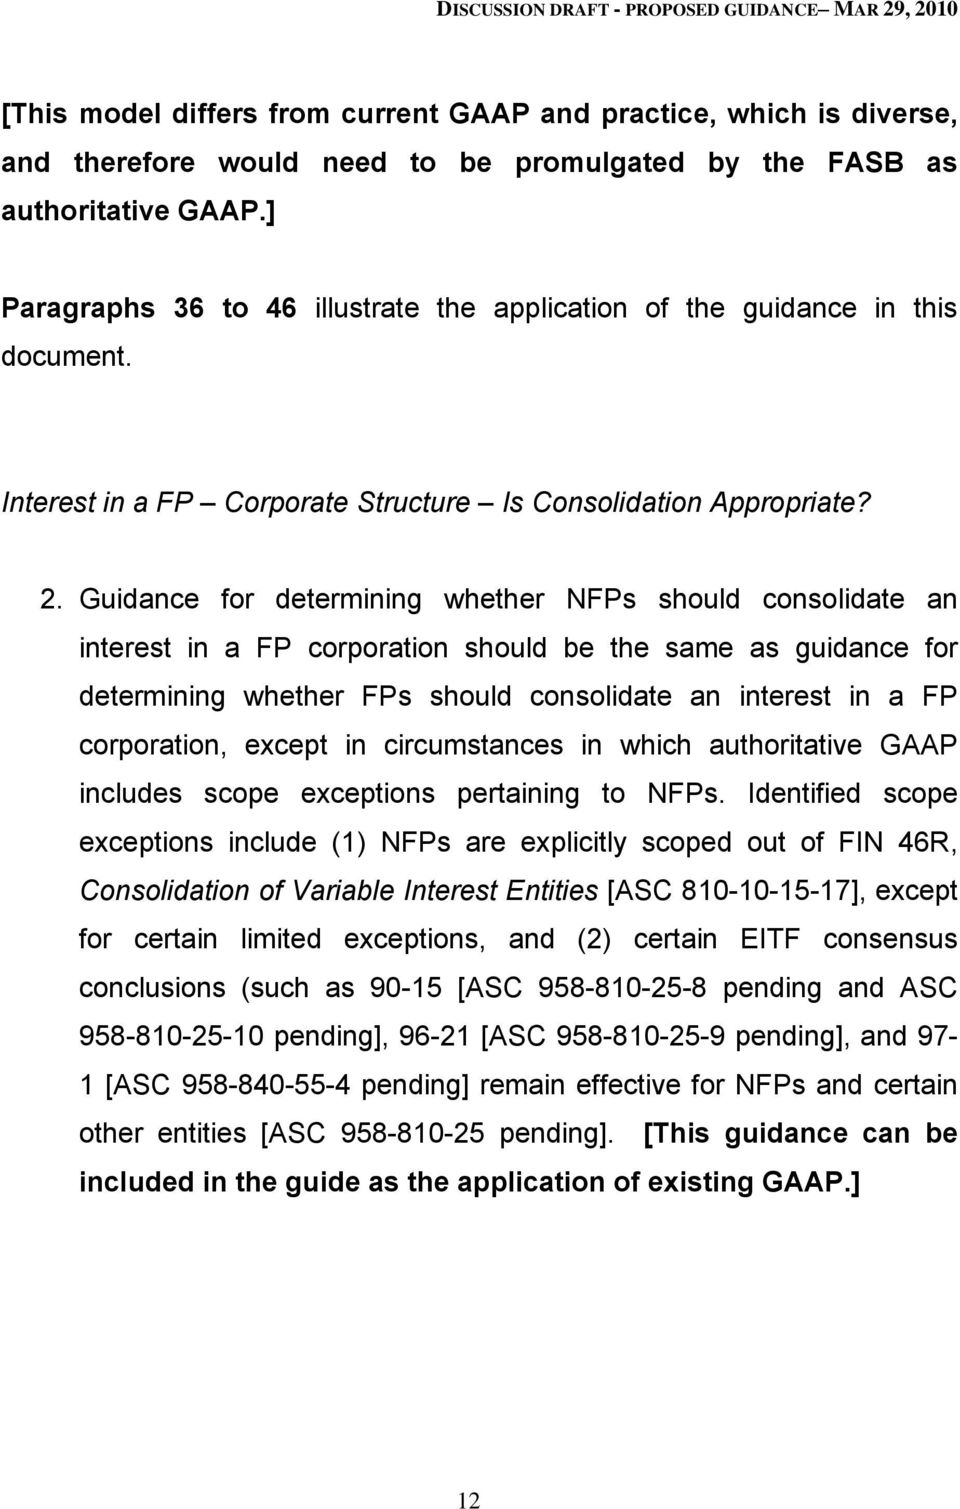 Guidance for determining whether NFPs should consolidate an interest in a FP corporation should be the same as guidance for determining whether FPs should consolidate an interest in a FP corporation,